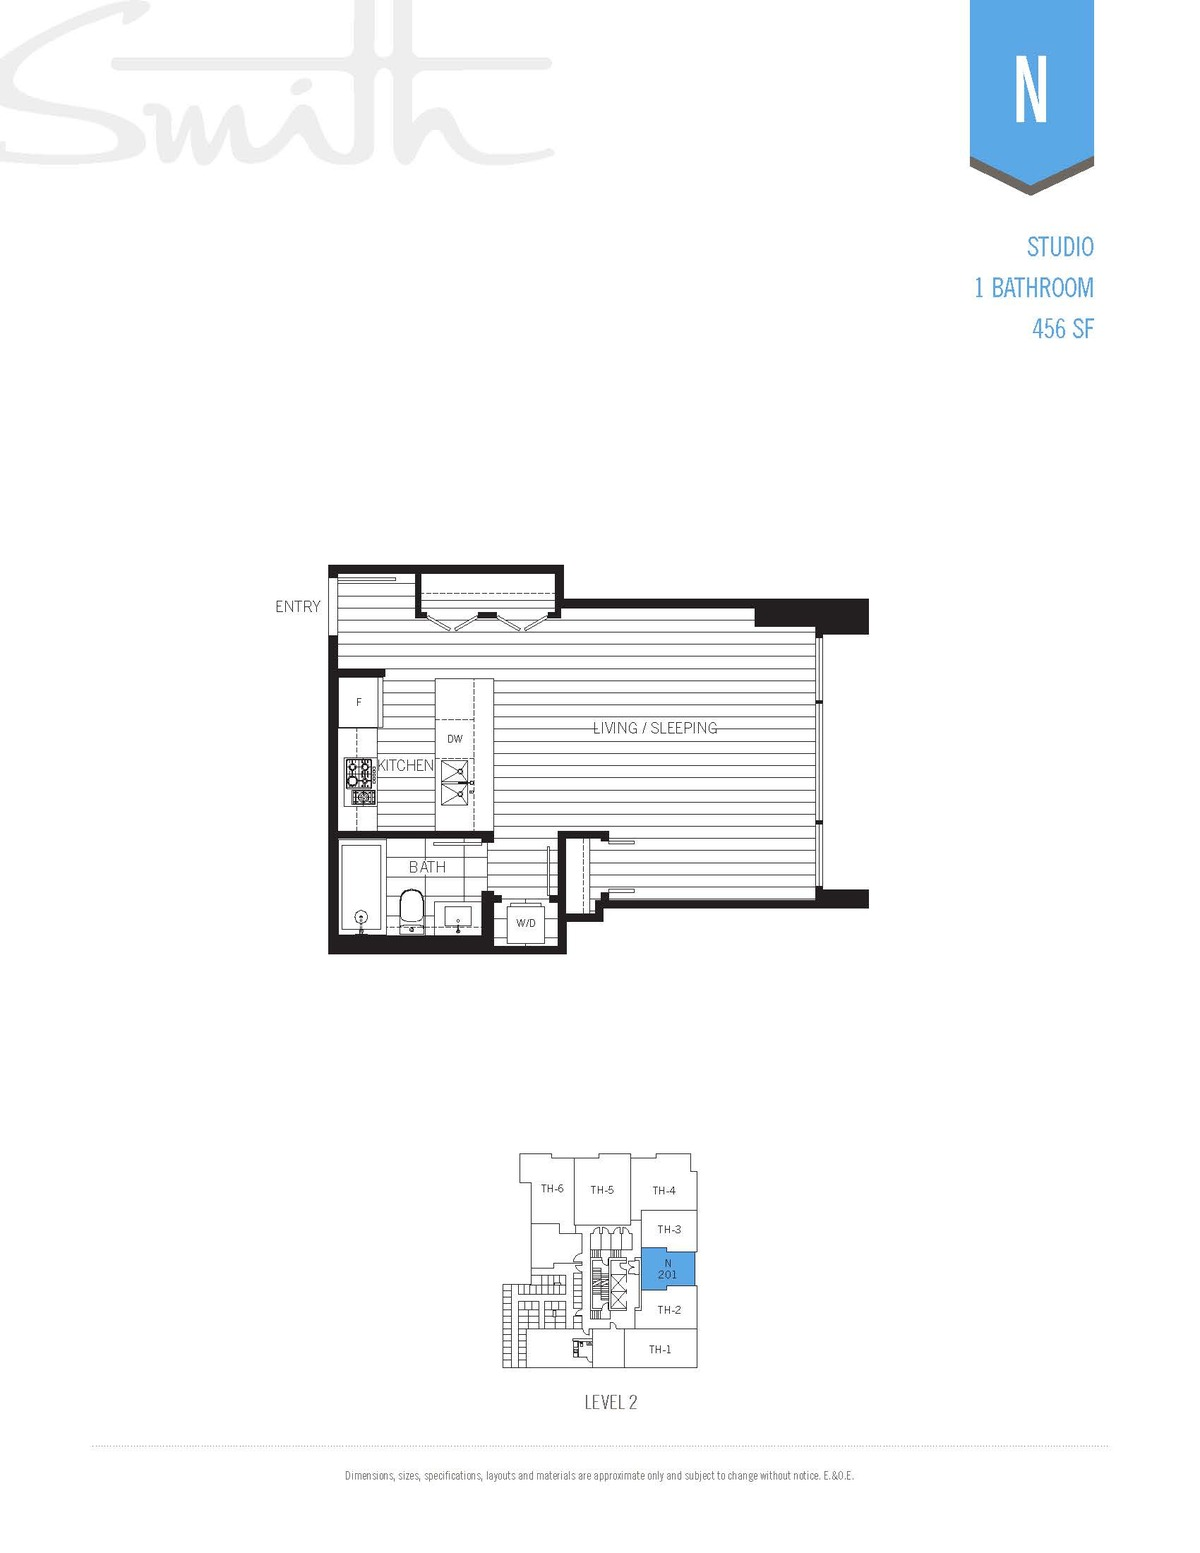 Smith Floorplan N